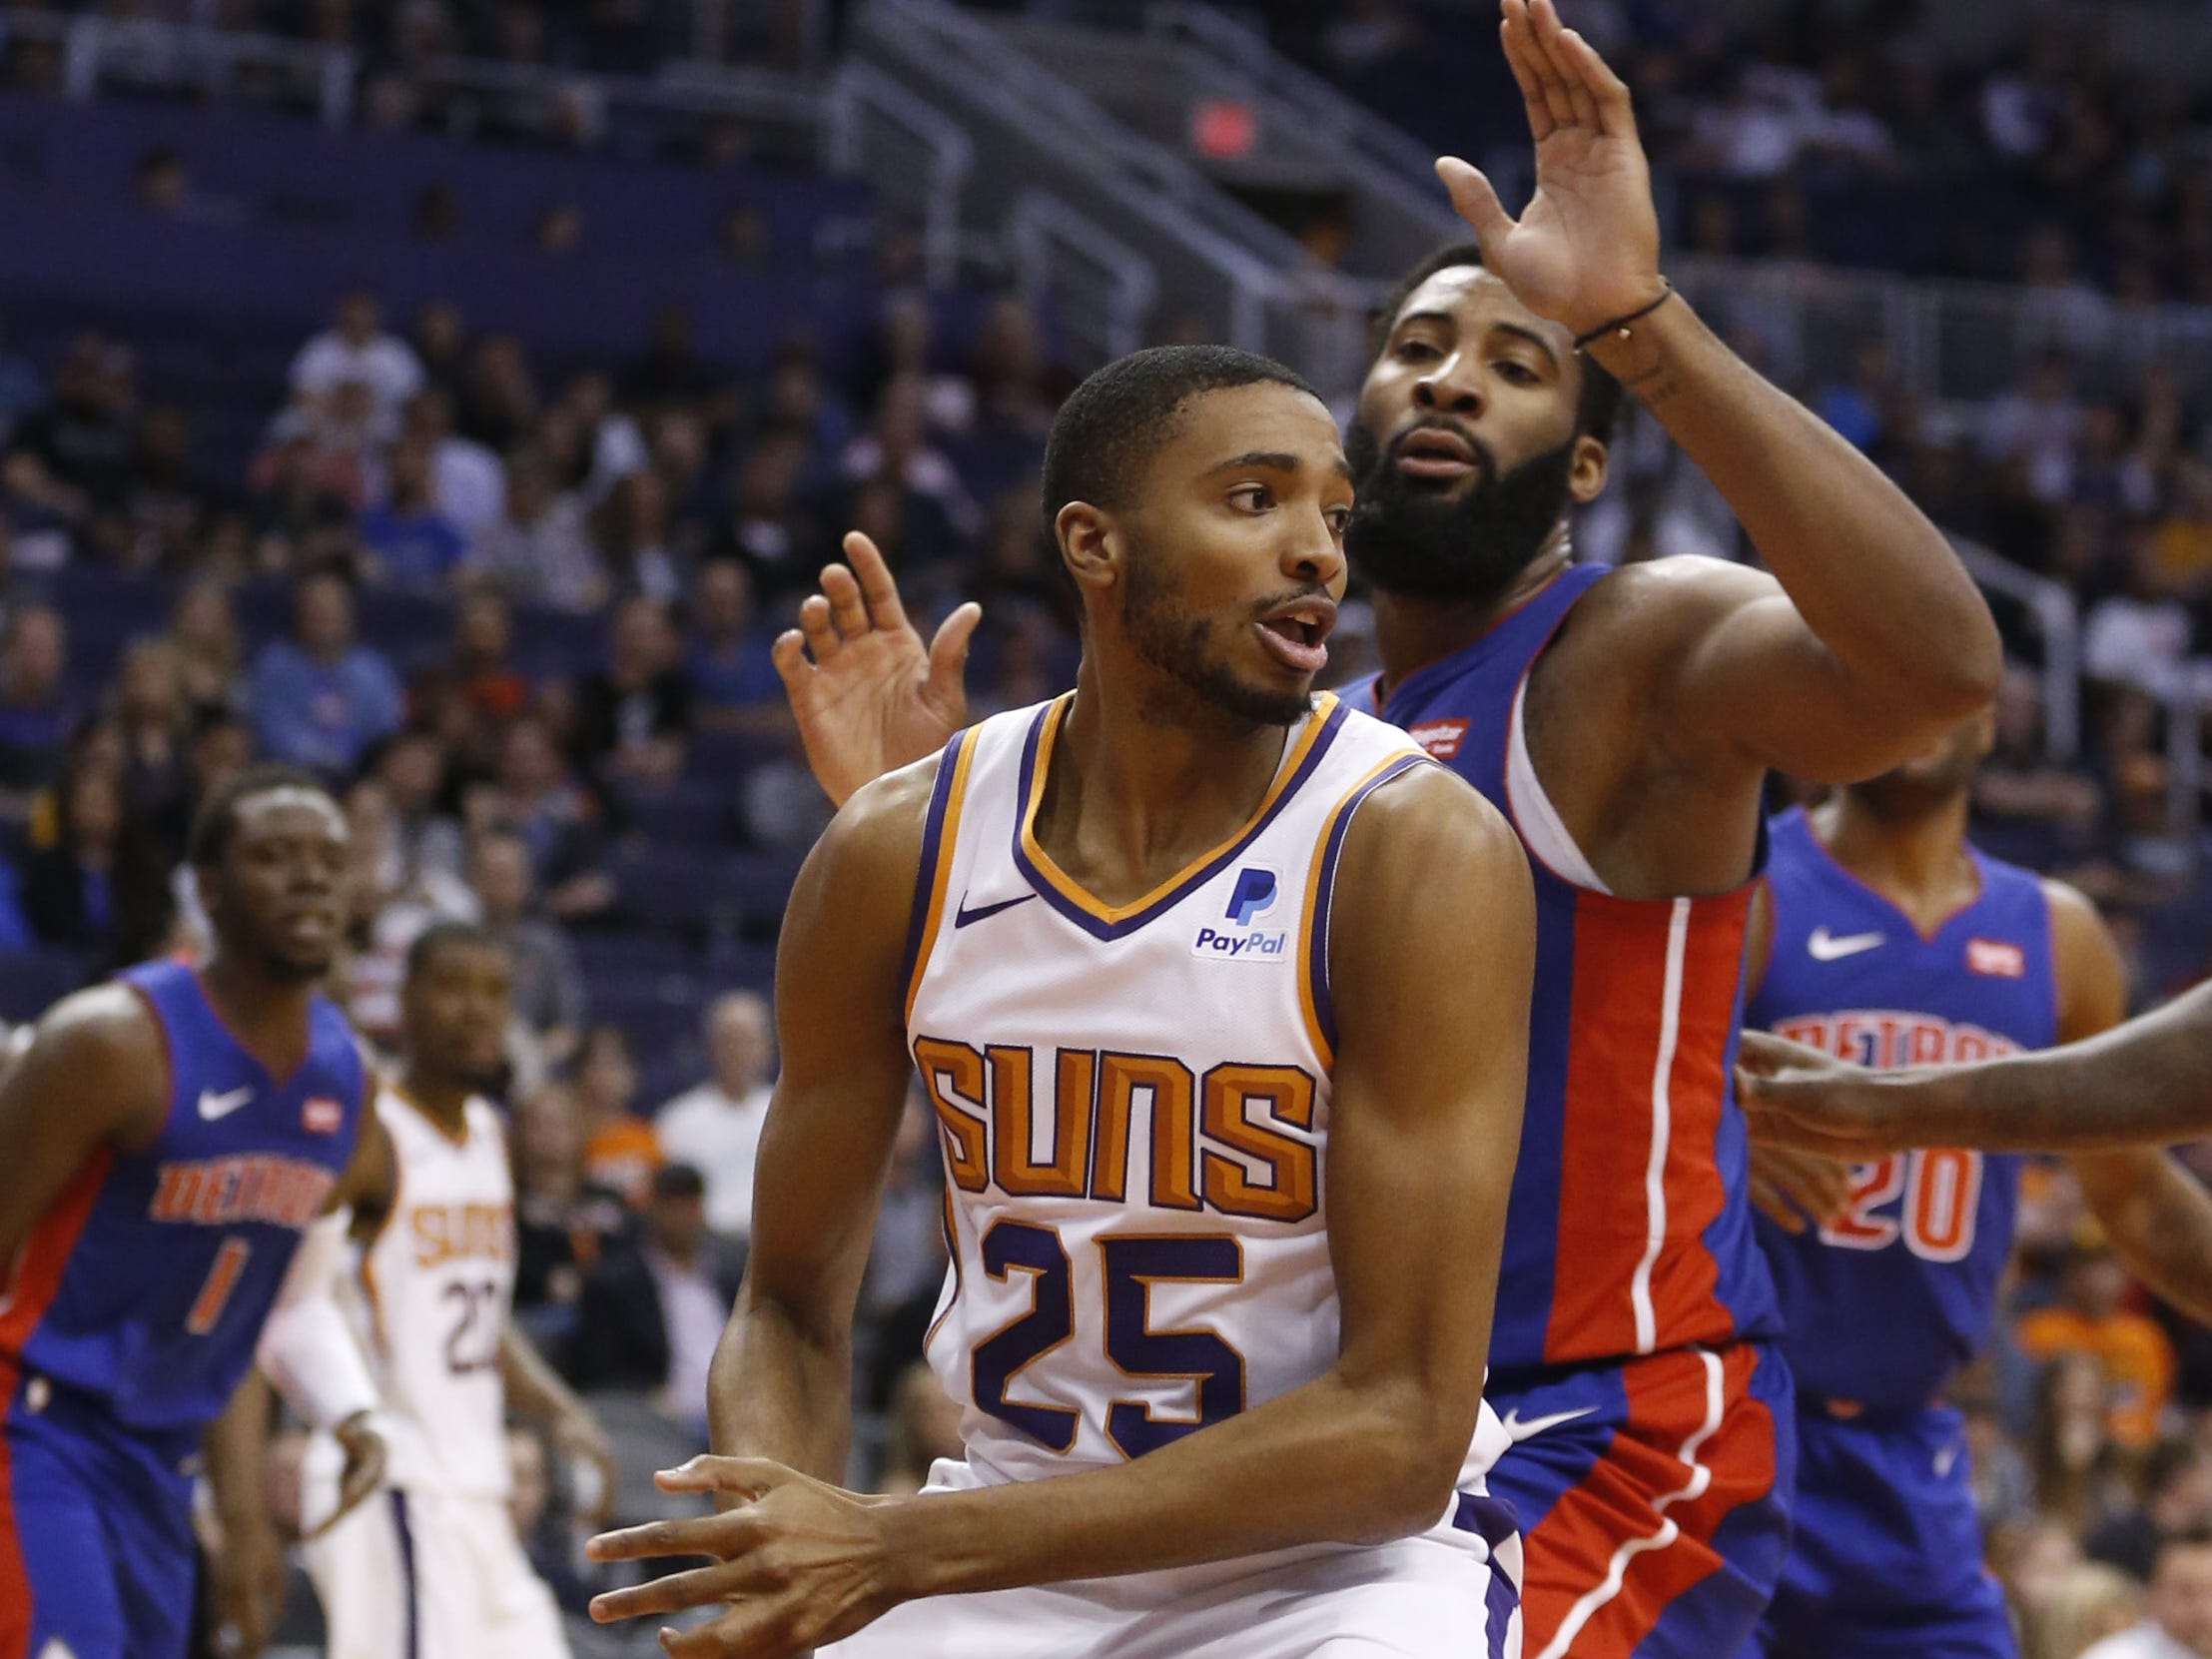 Suns' Mikal Bridges (25) dribbles in the post against Pistons' Andre Drummond (0) during the first half at the Talking Stick Resort Arena in Phoenix, Ariz. on March 21, 2019.